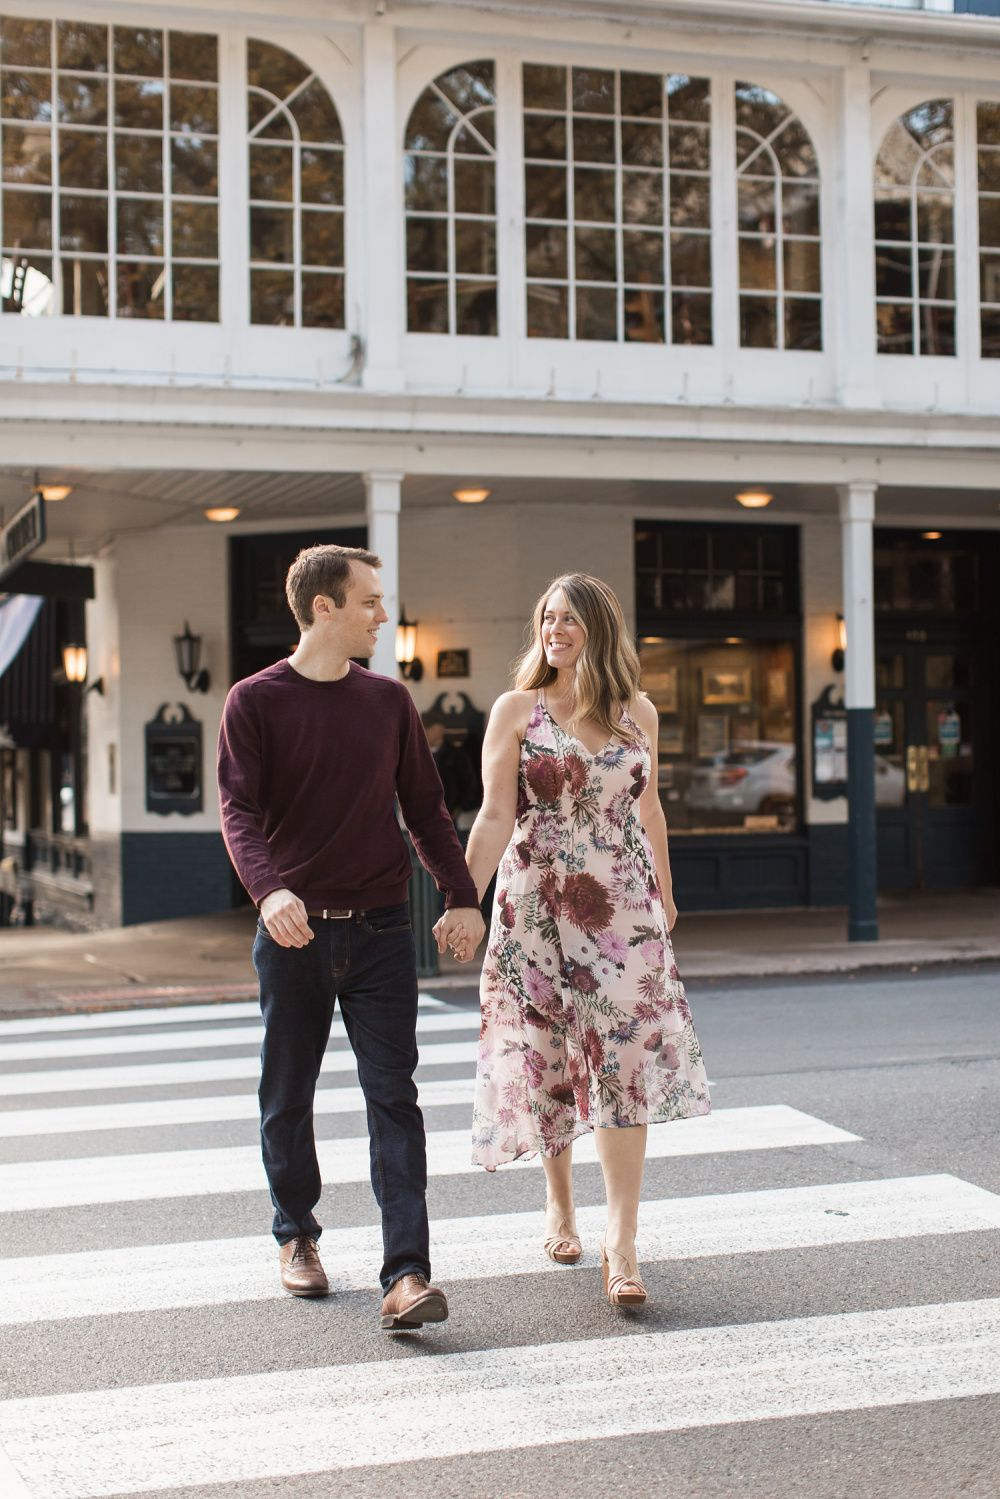 State College, PA Engagement Photographer | Downtown State College Engagement Session | Jen and Mike